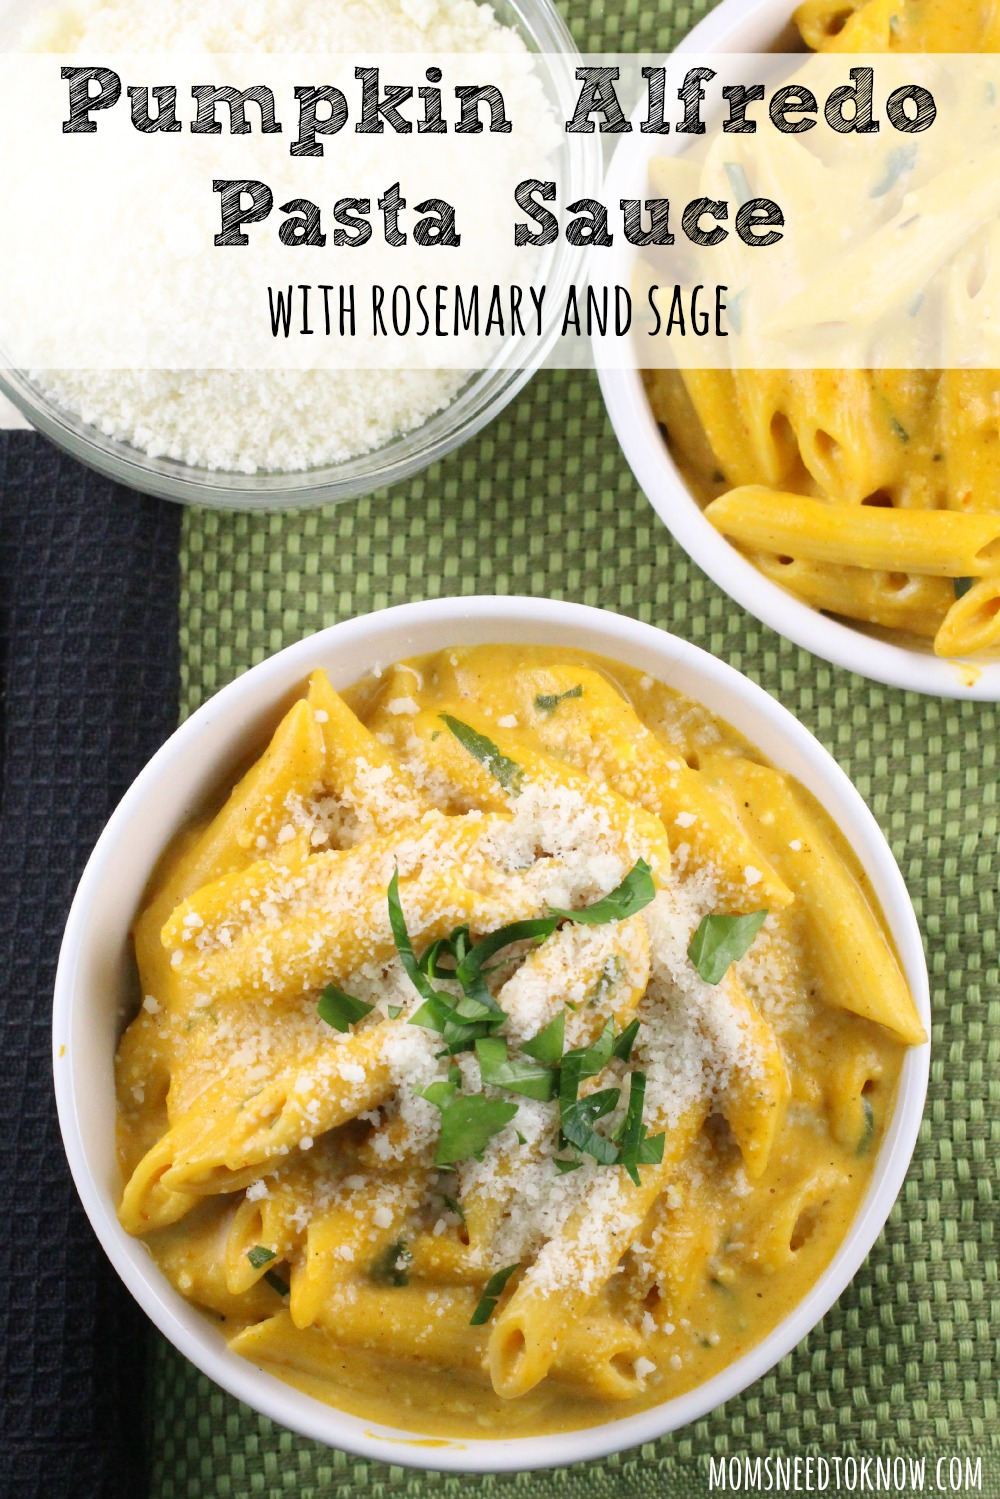 Pumpkin Alfredo Sauce with Rosemary and Sage | Moms Need To Know ™